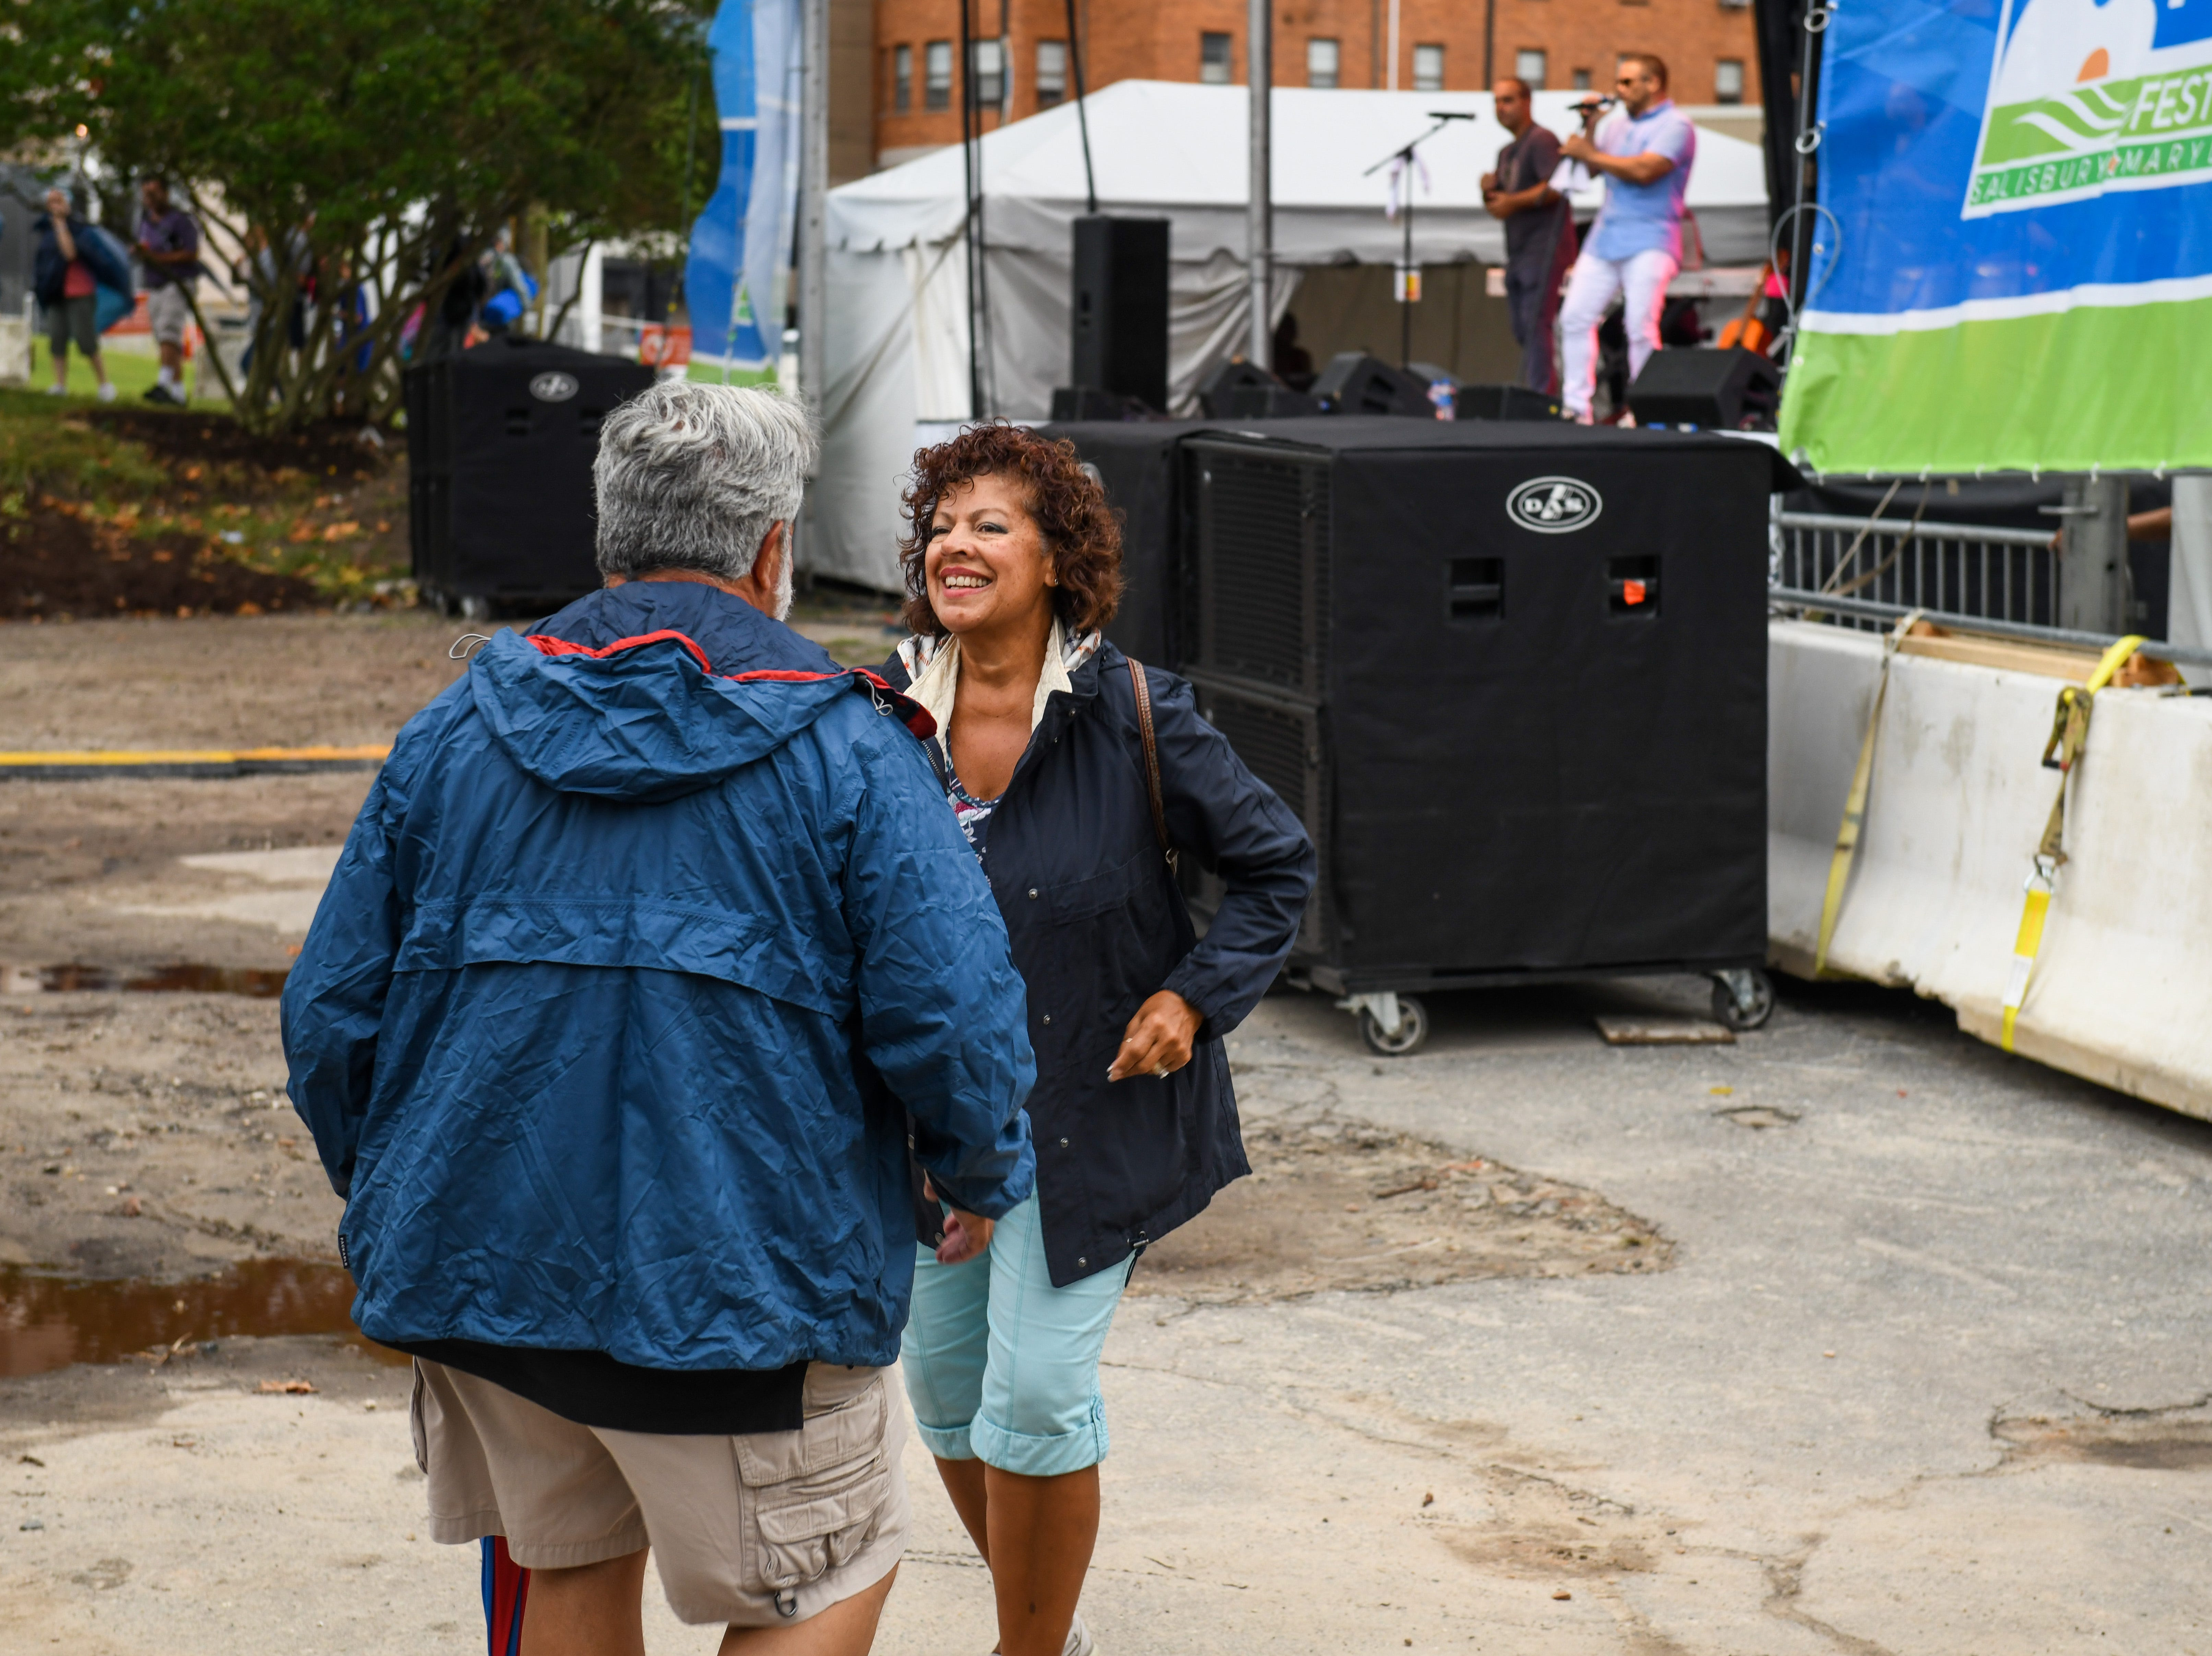 Lisa and Frank Parrino dance to the music of Orquesta SCC at the National Folk Festival in Salisbury on Saturday, Sept. 8.